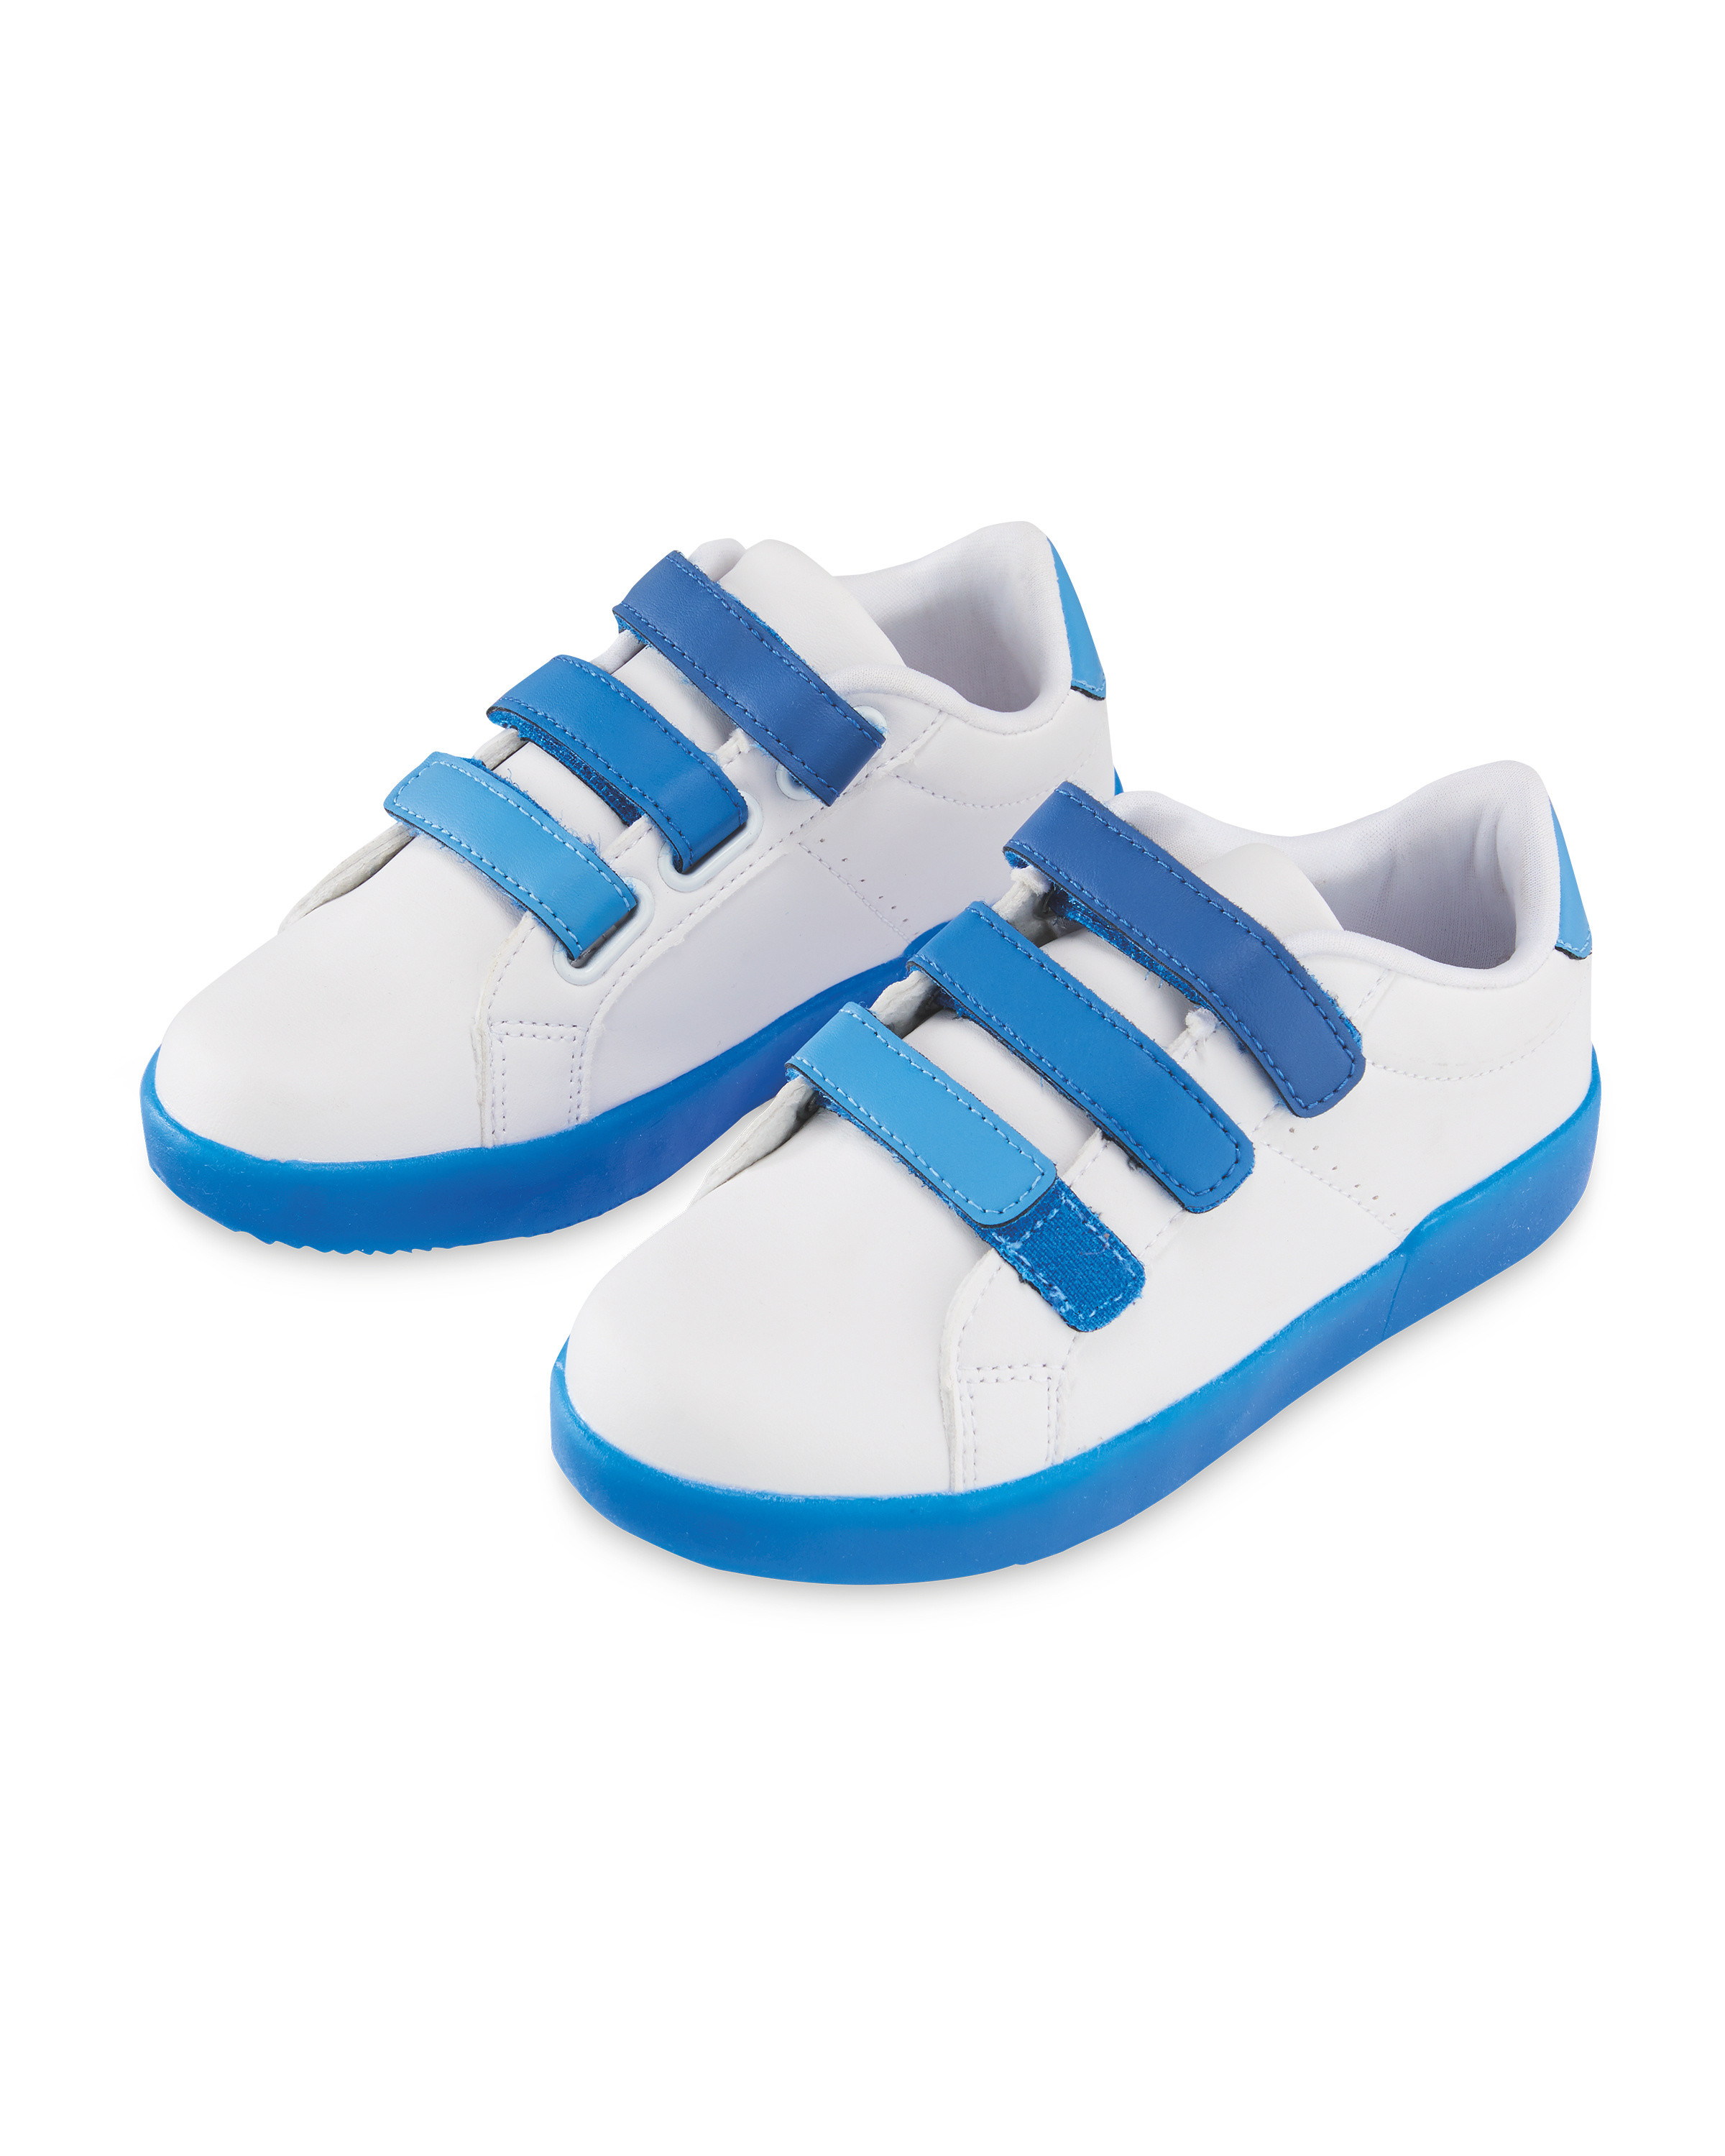 1c4d885055a9c Lily & Dan Trainers with Lights - ALDI UK